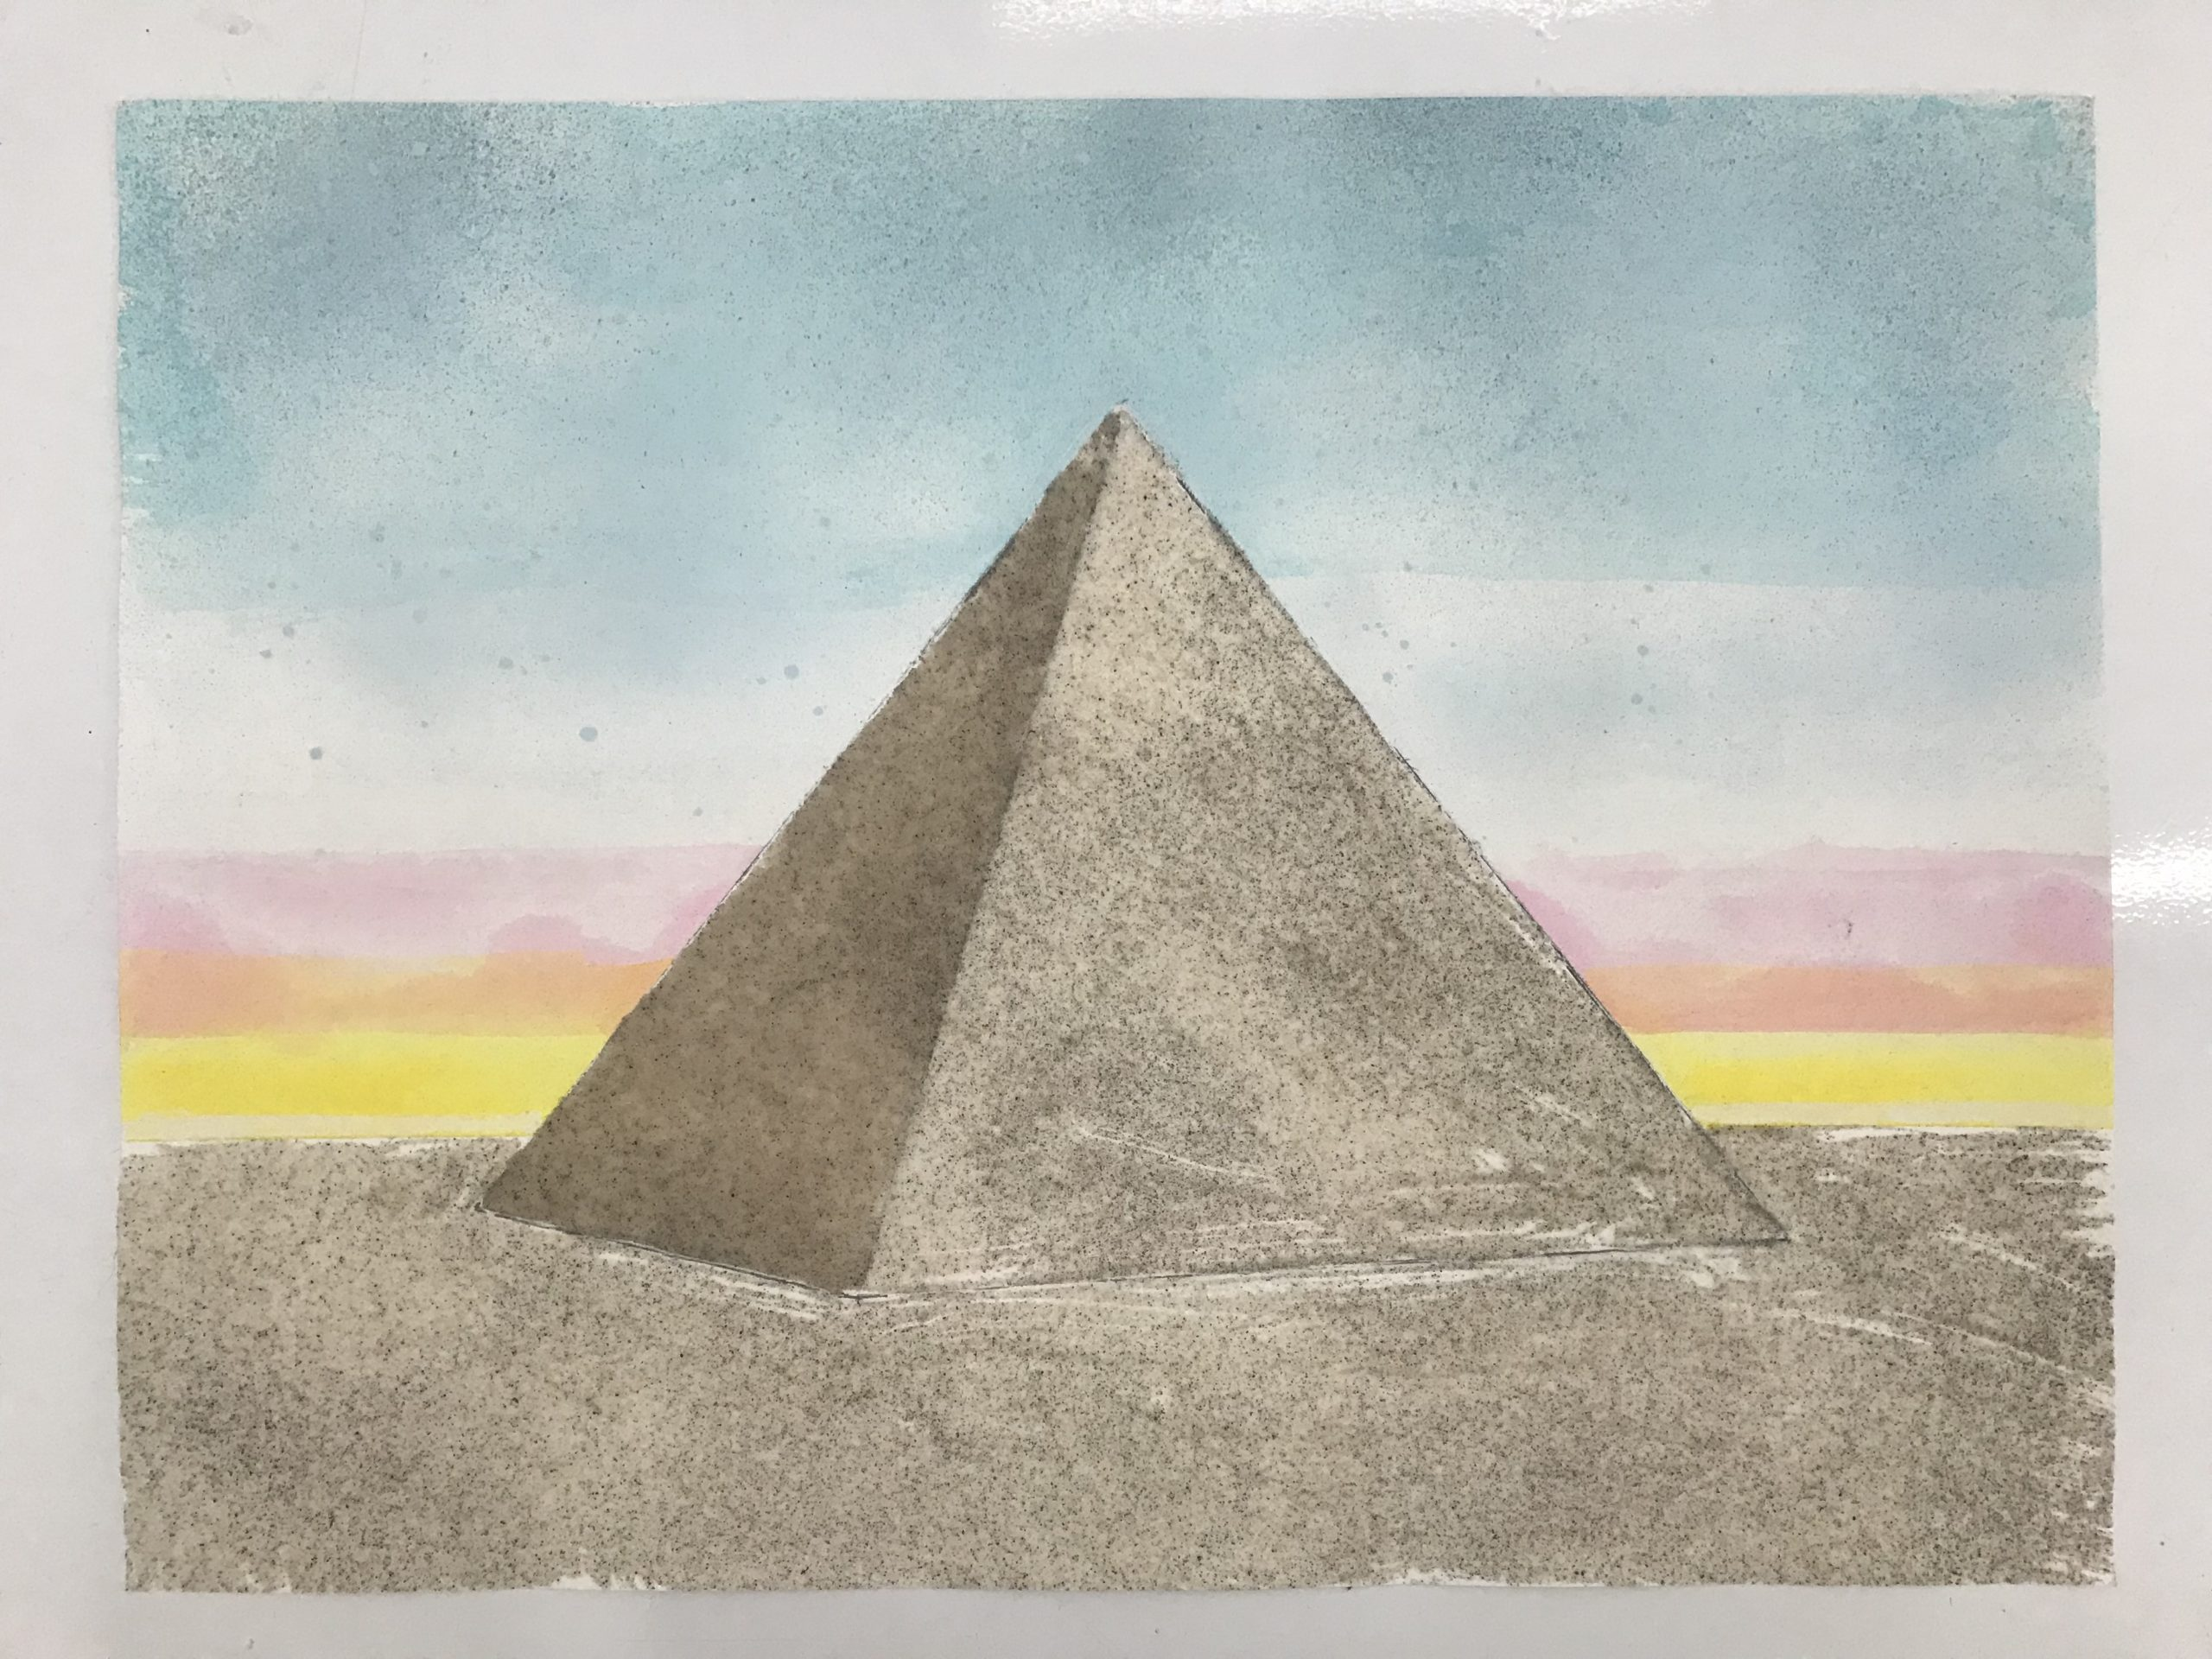 a drawing of a pyramid with a sunset behind